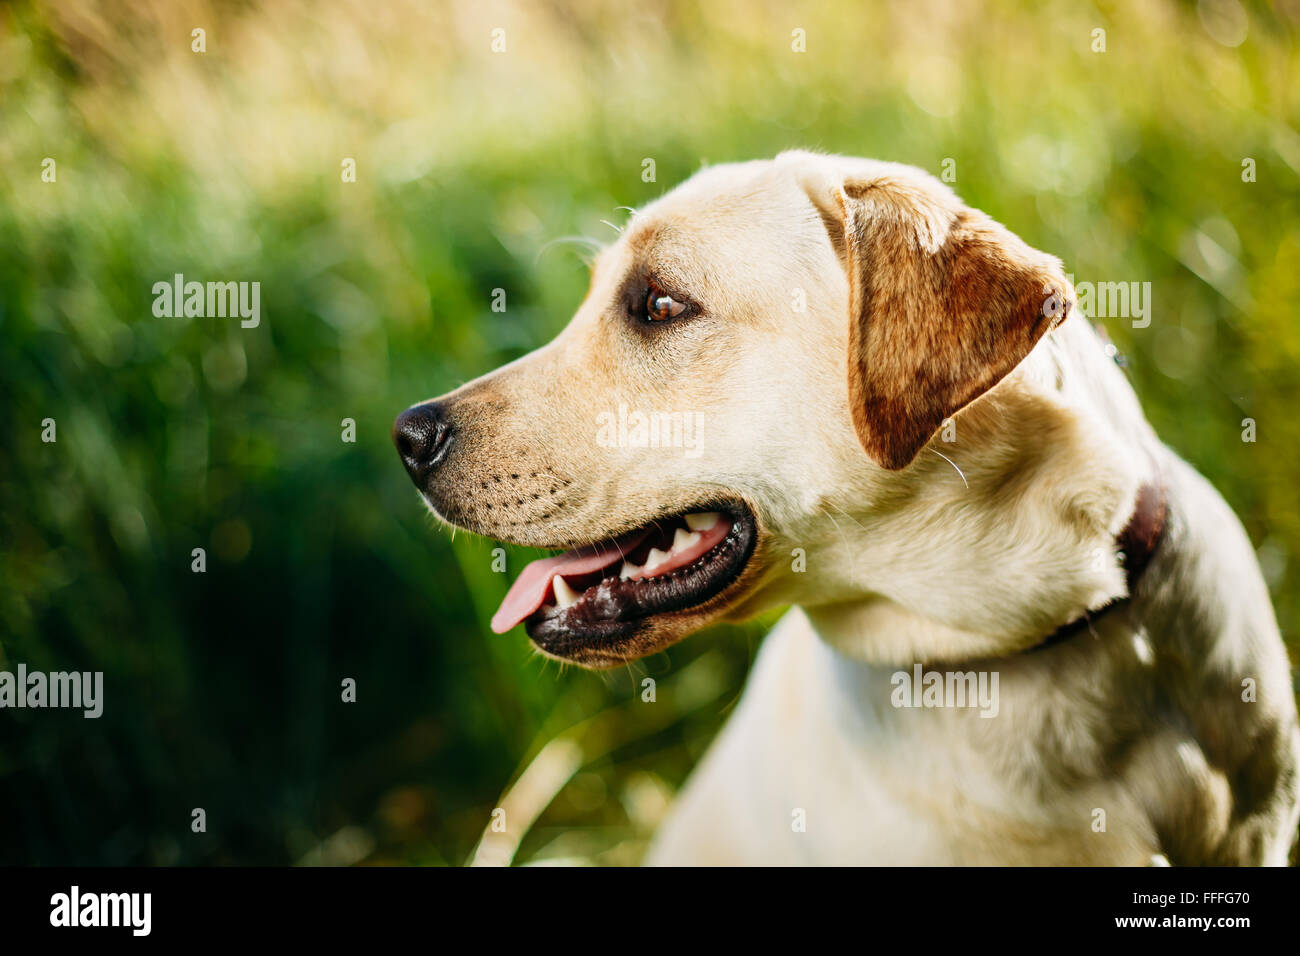 Close up face of funny white Labrador Retriever Dog Sitting In Green Grass - Stock Image